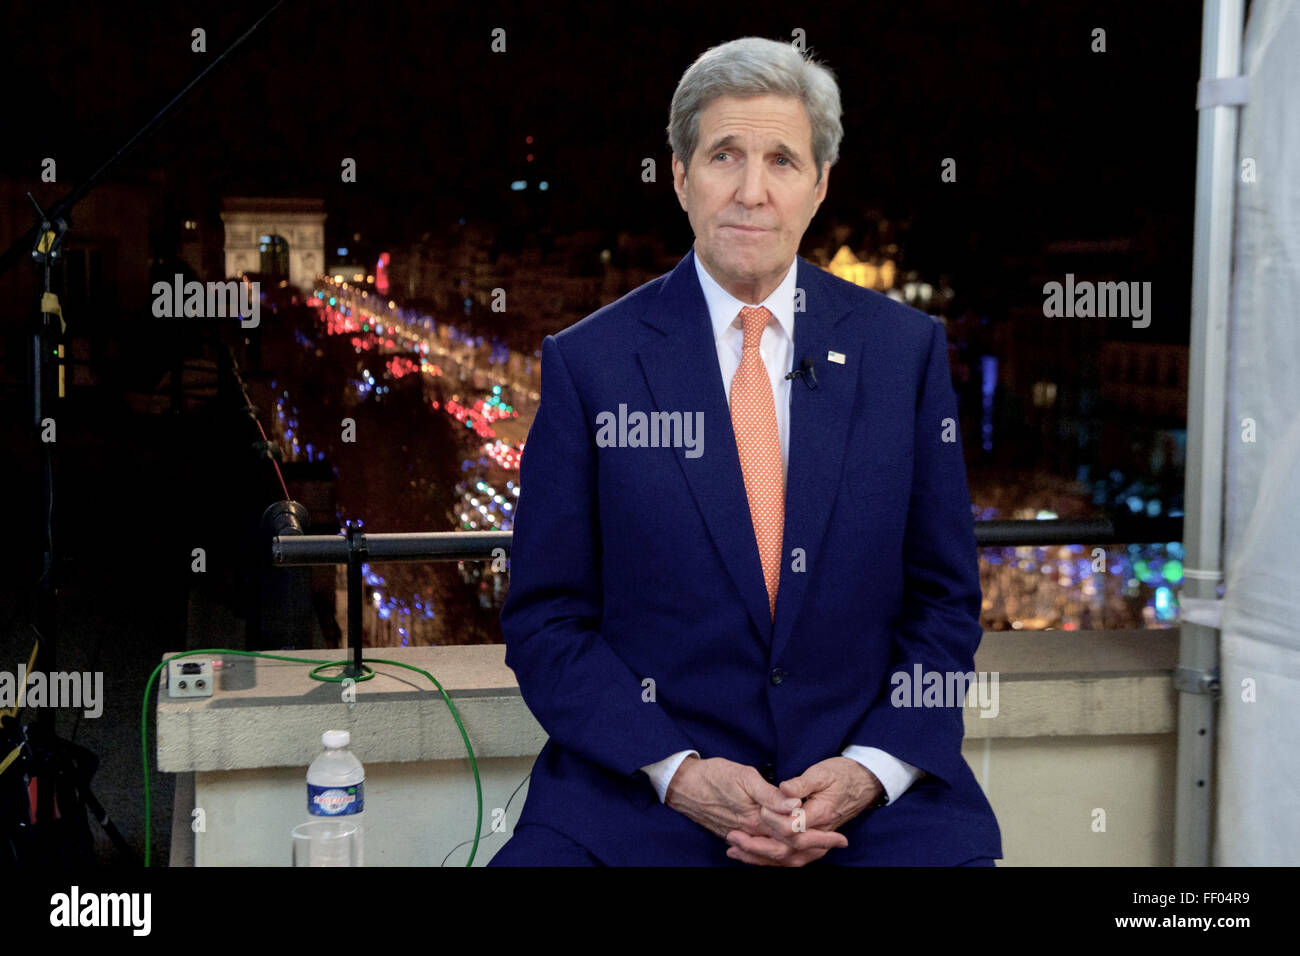 Secretary Kerry Tapes A Series Of Sunday News Program Interviews Following The COP21 Climate Change Conference Stock Photo